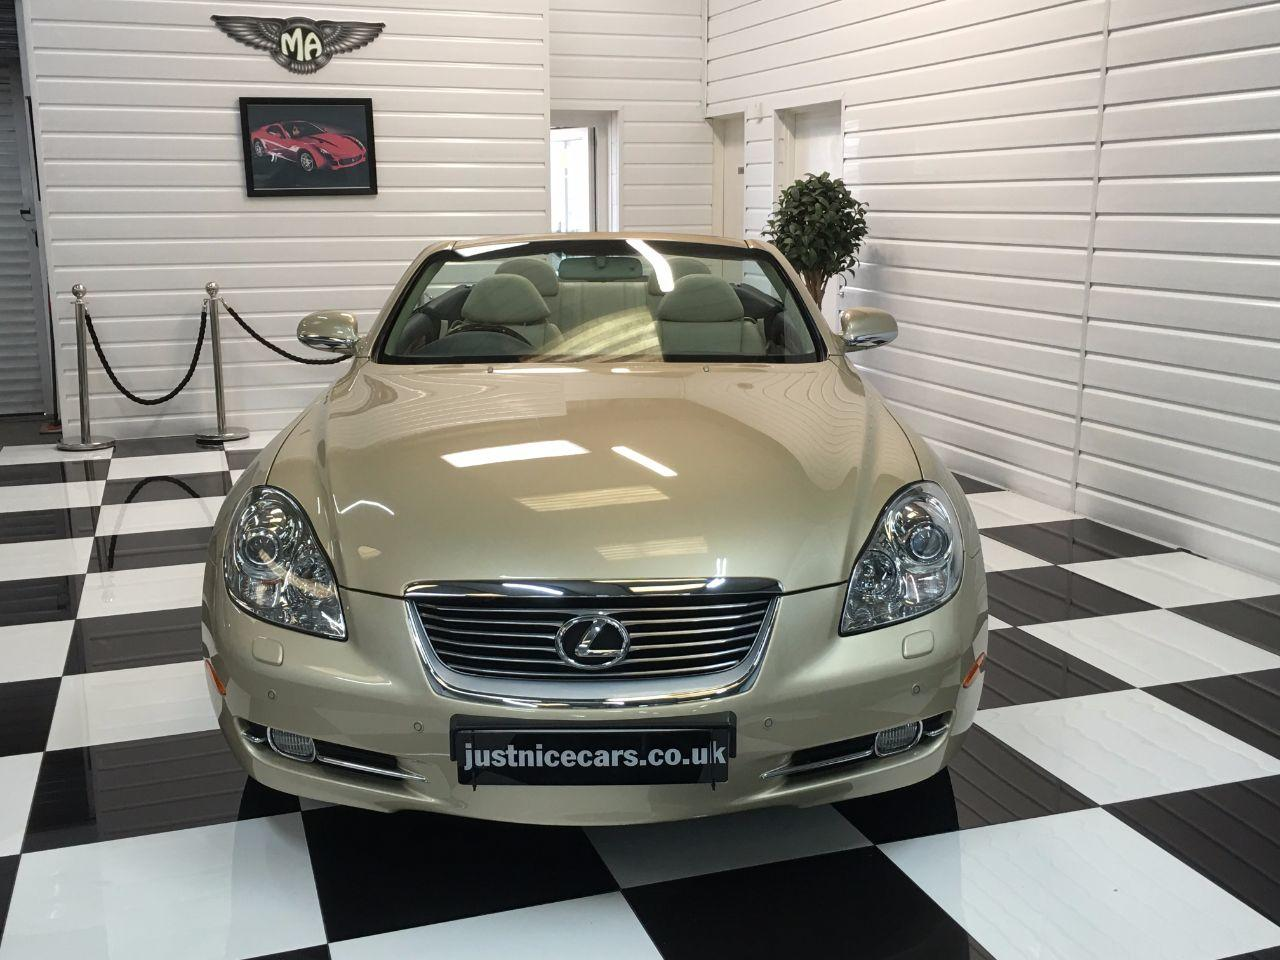 Lexus SC 430 4.3 V8 Auto Convertible Petrol Amberley Gold Pearl